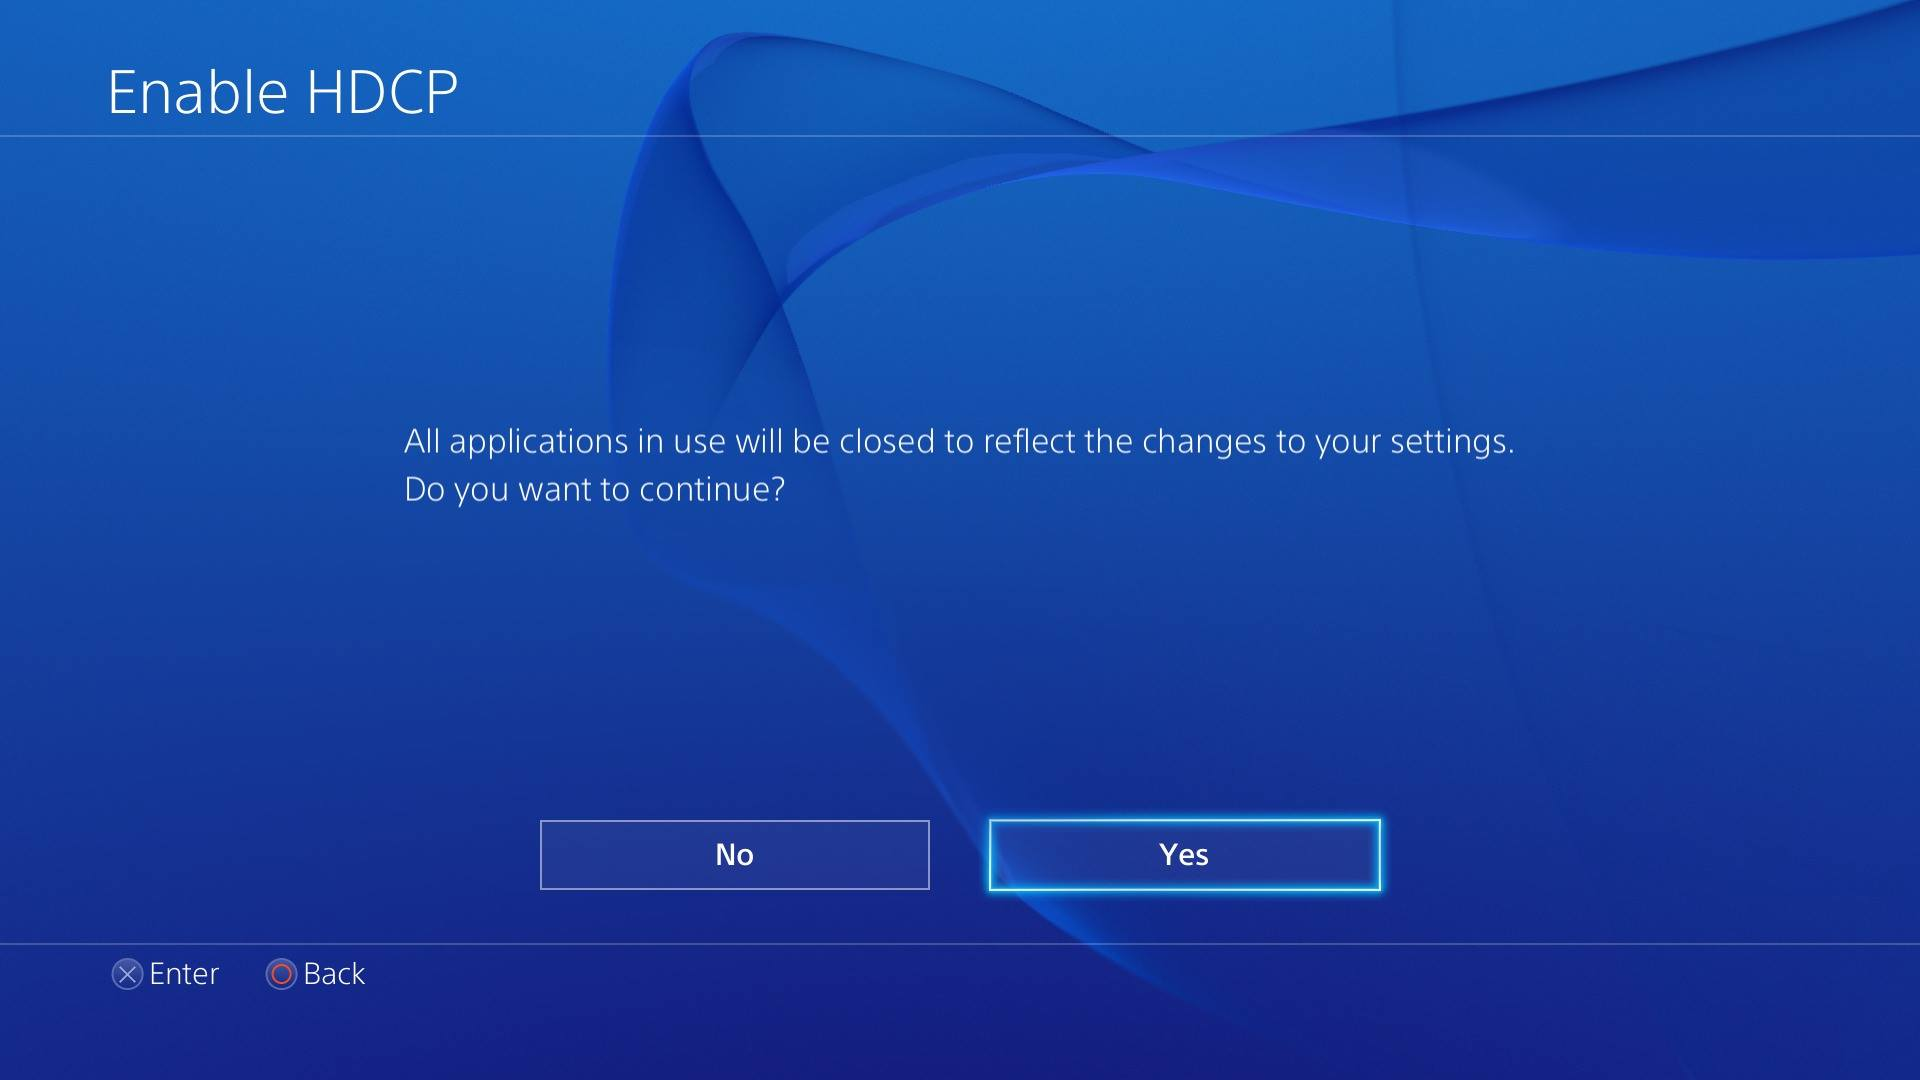 PS4 HDCP toggle must be off to record games, on to watch video apps